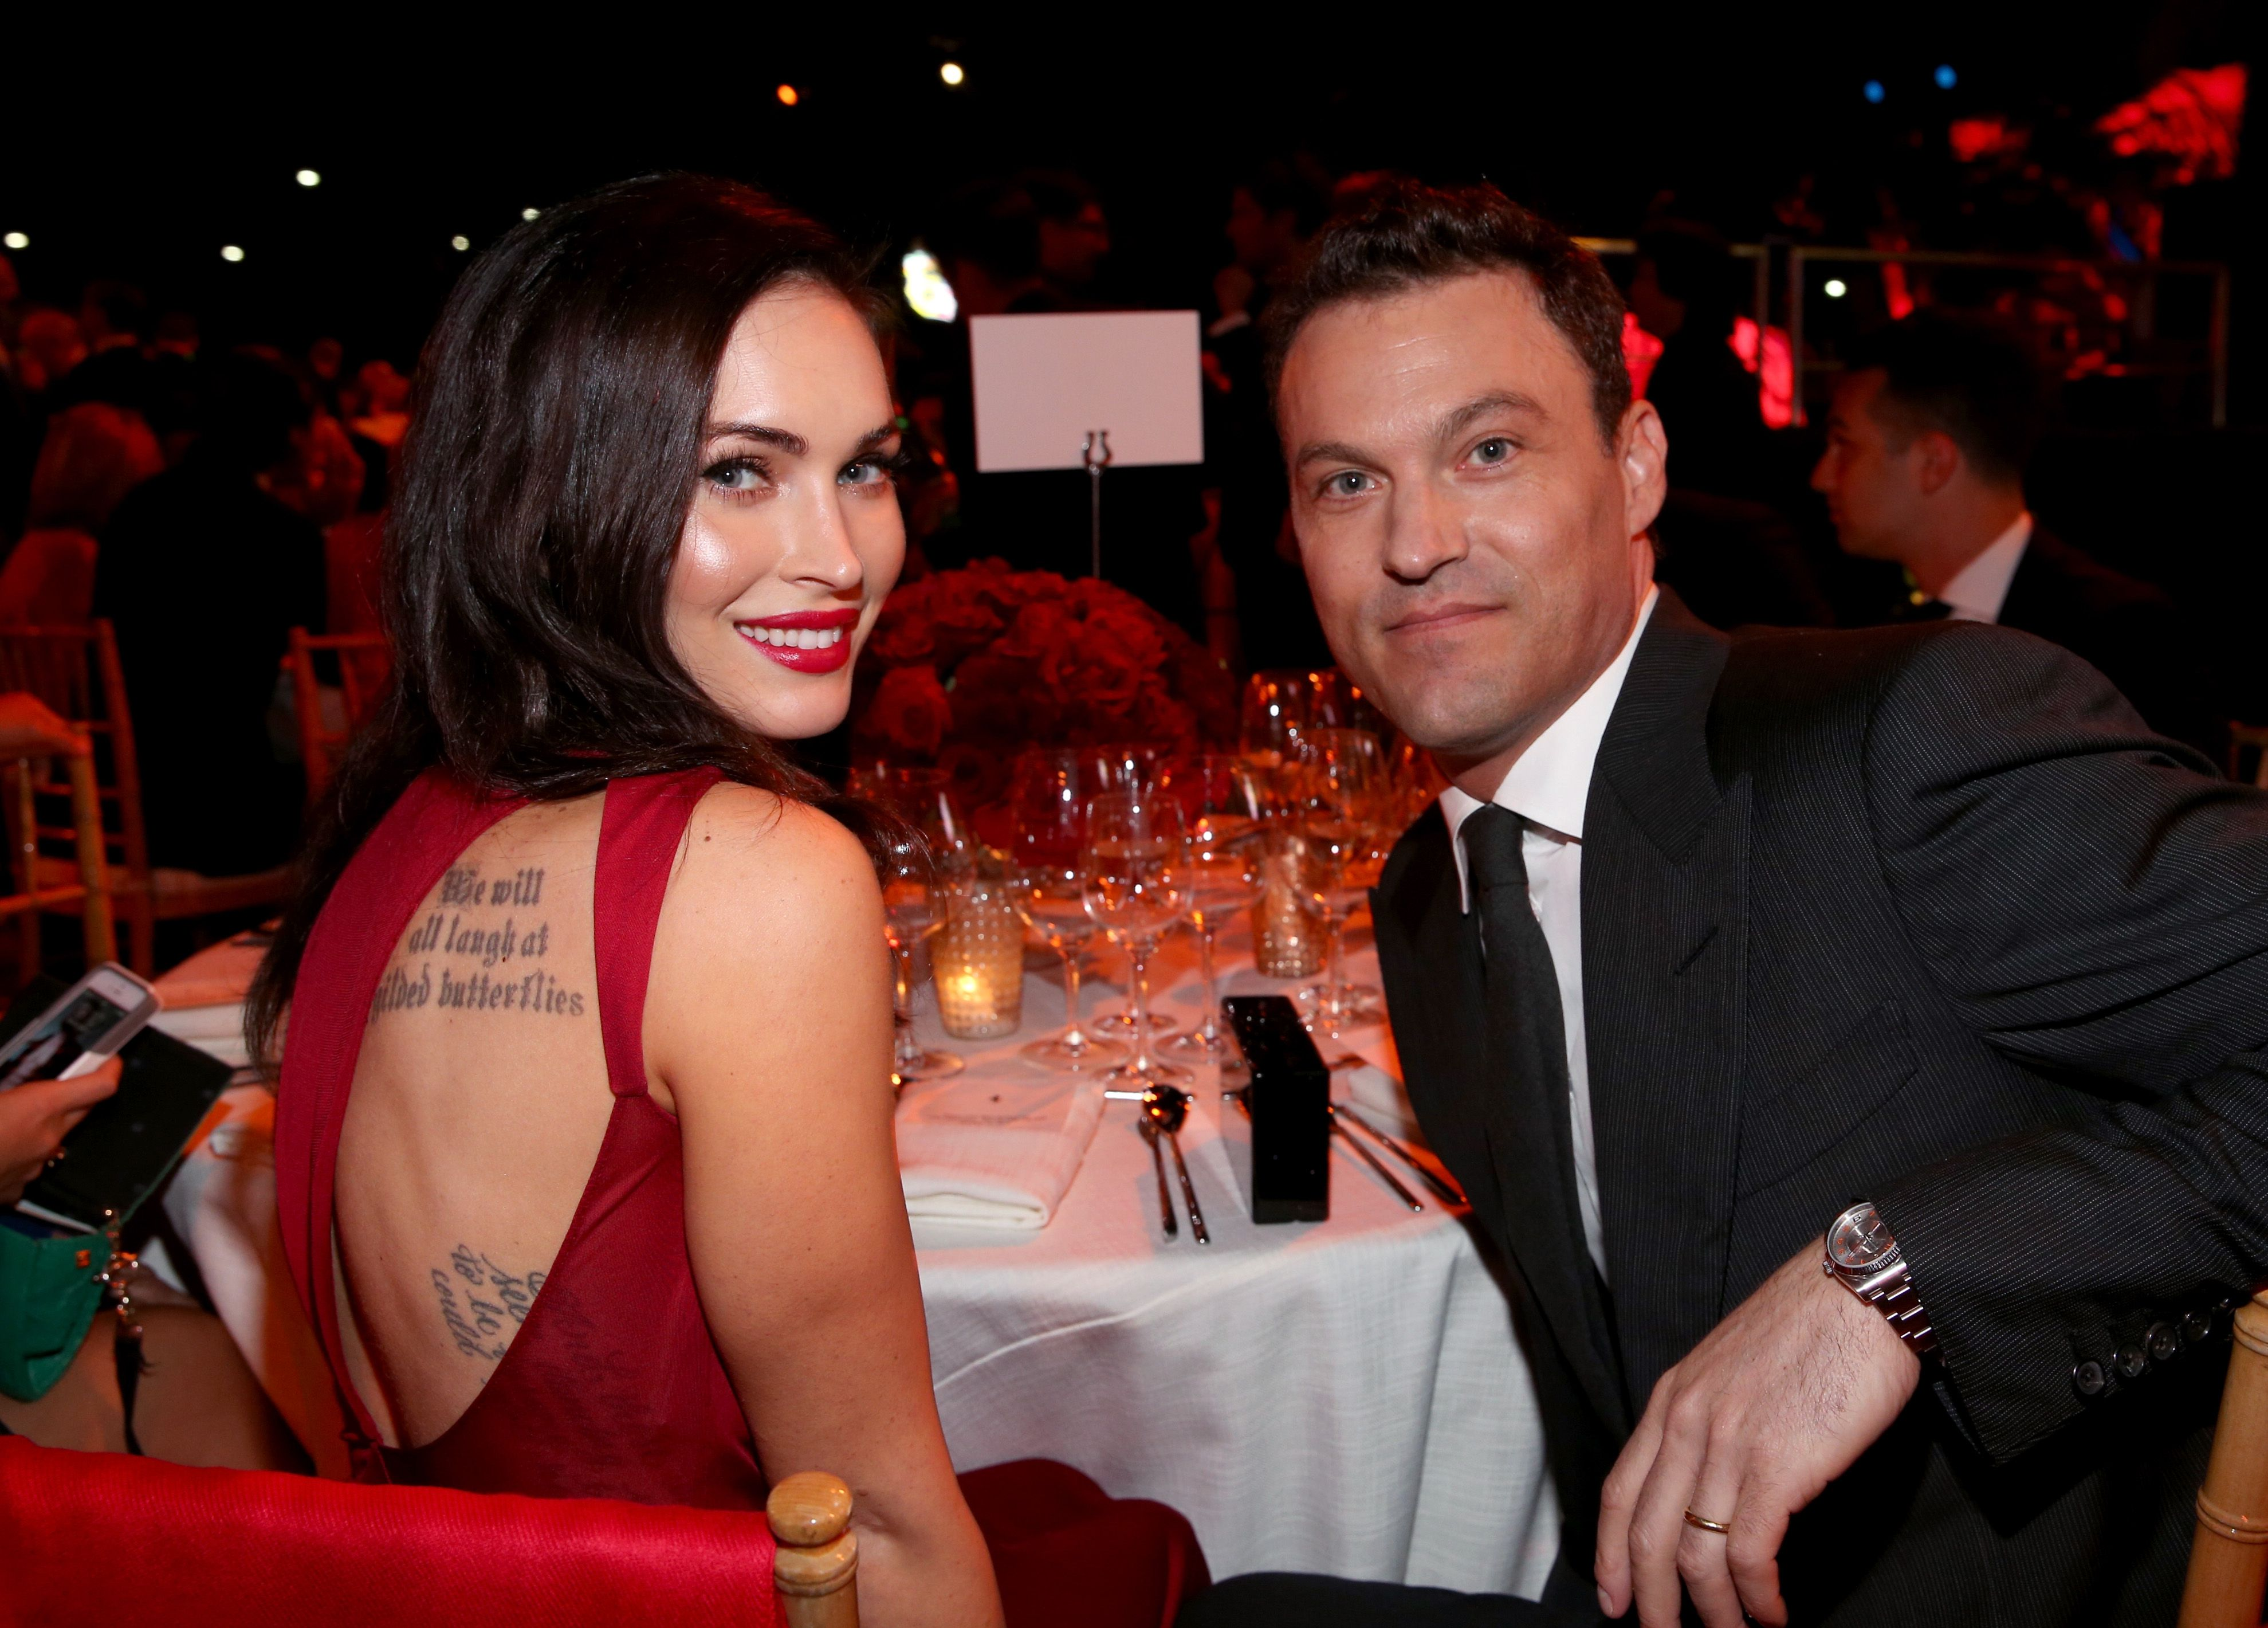 Megan Fox and Brian Austin Green pose for photographers